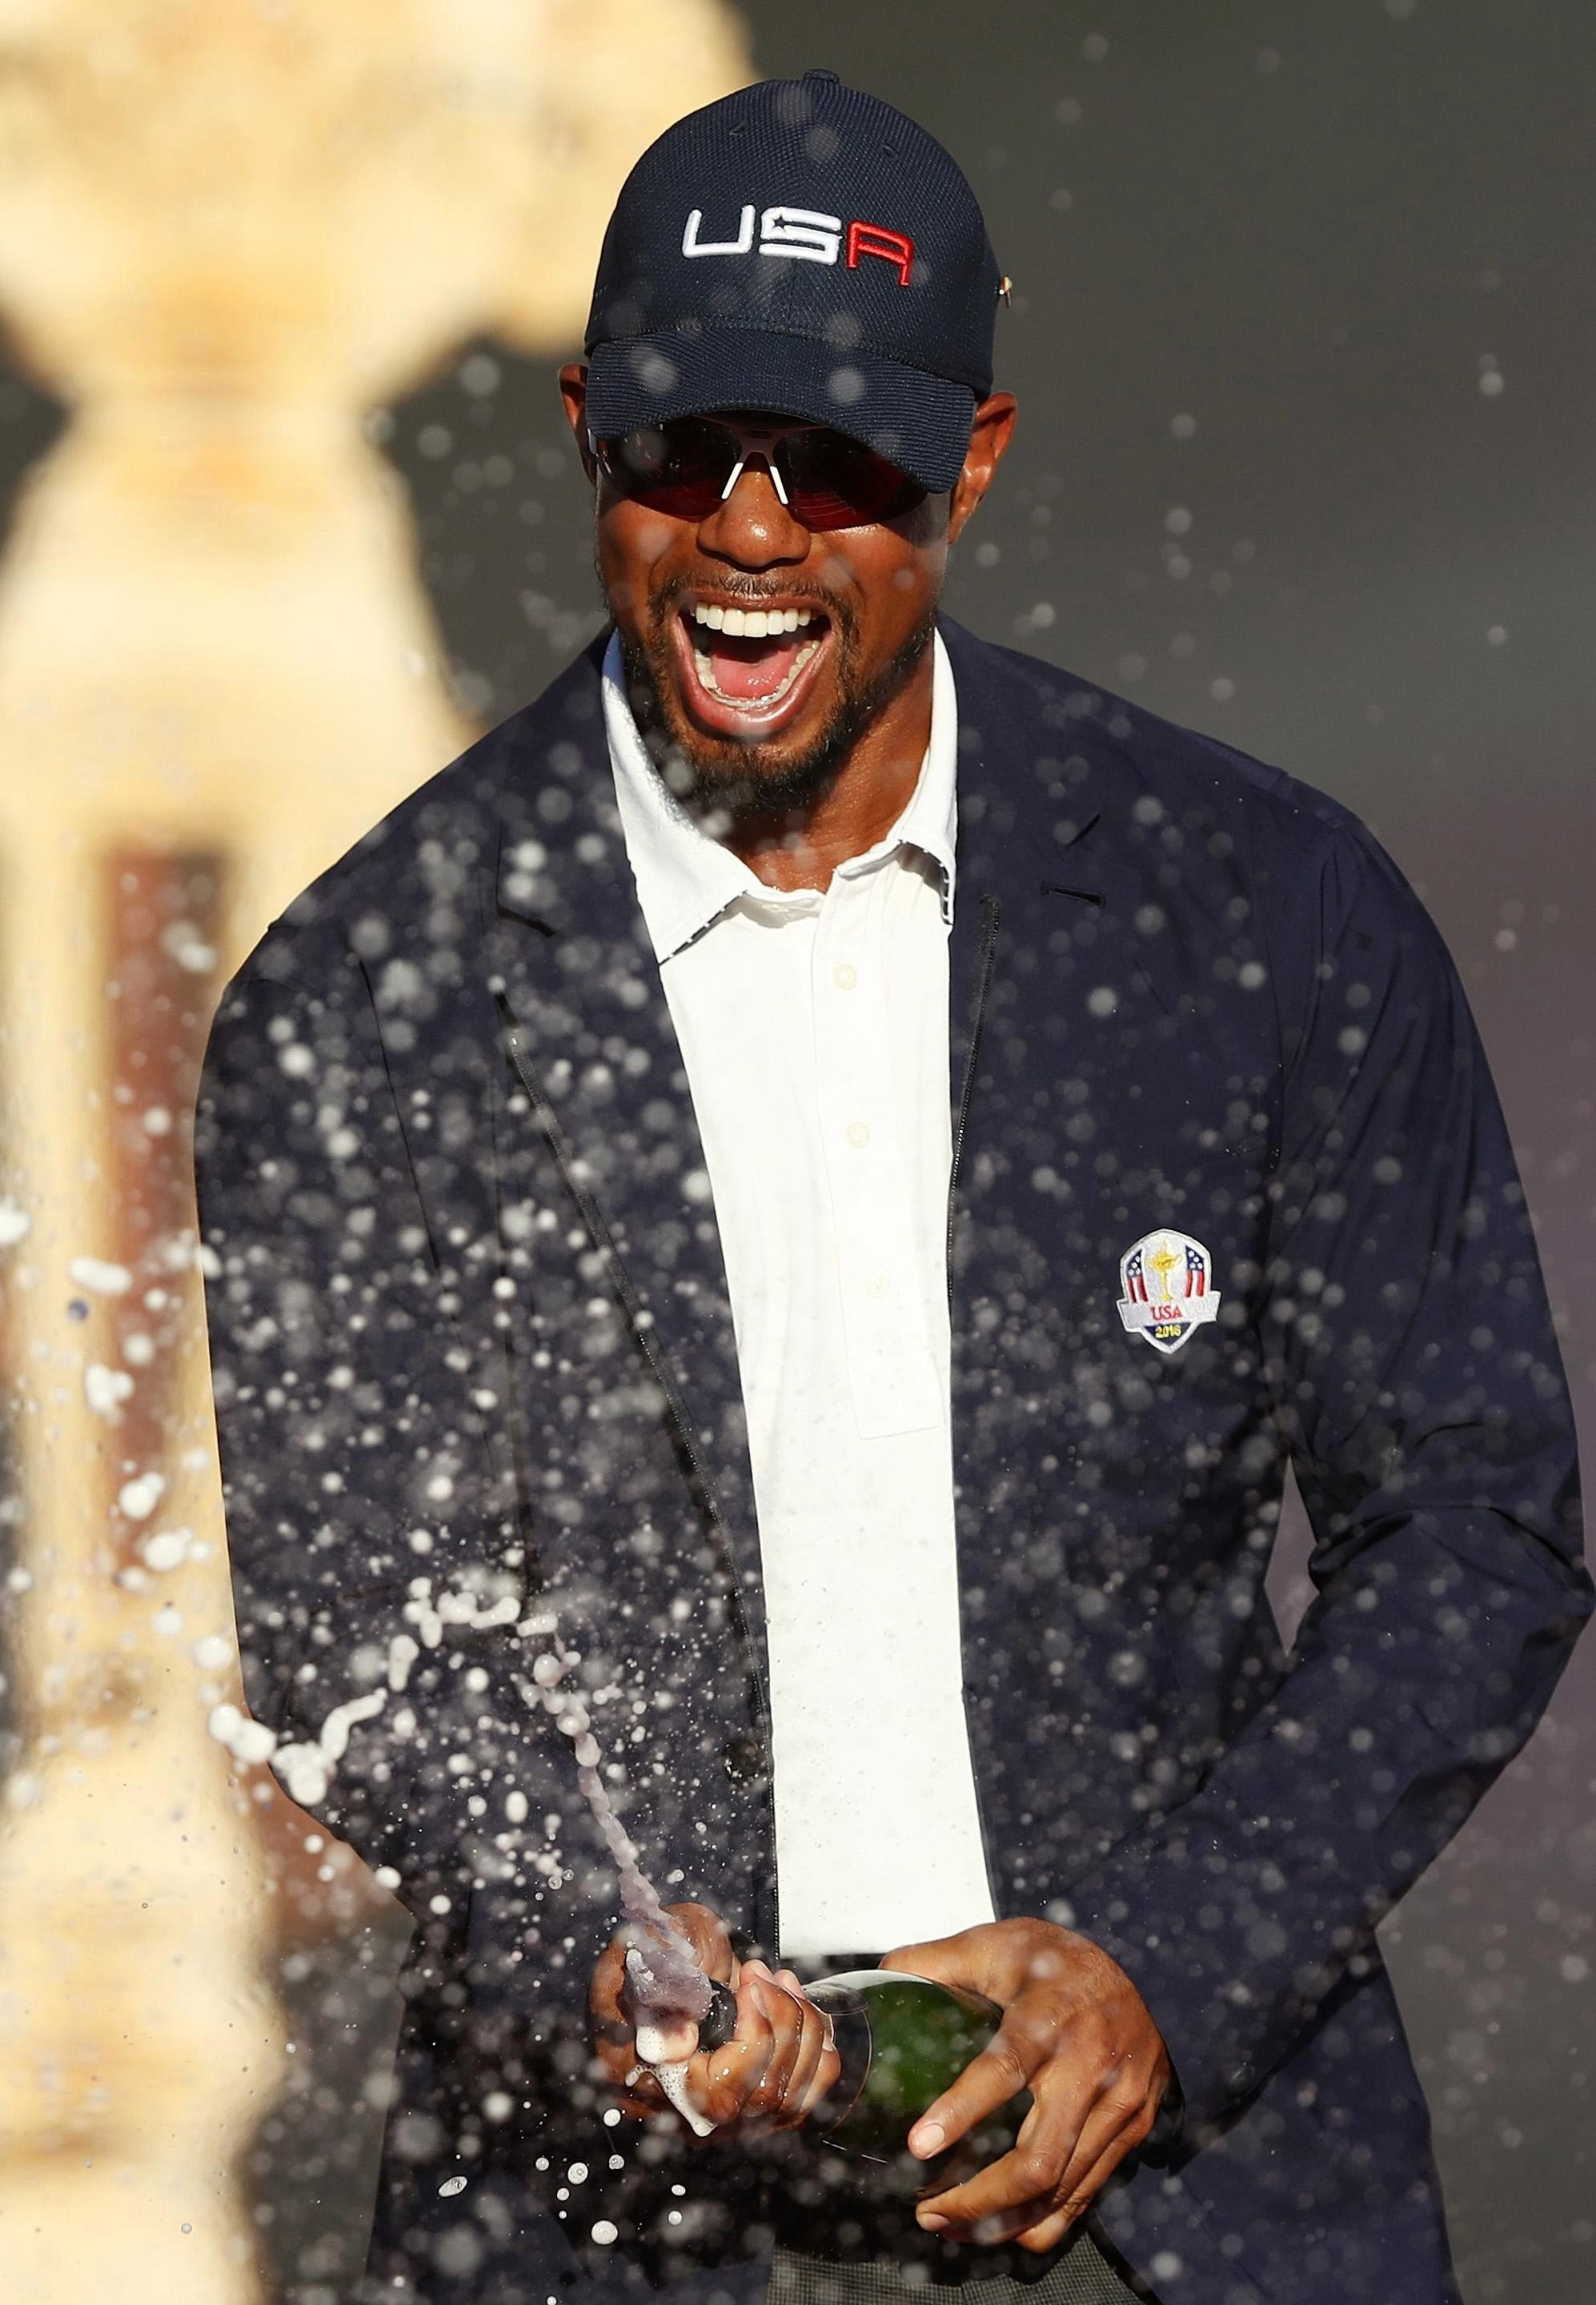 Punters will be popping the champagne along with Tiger Woods should he win a fourth Claret Jug